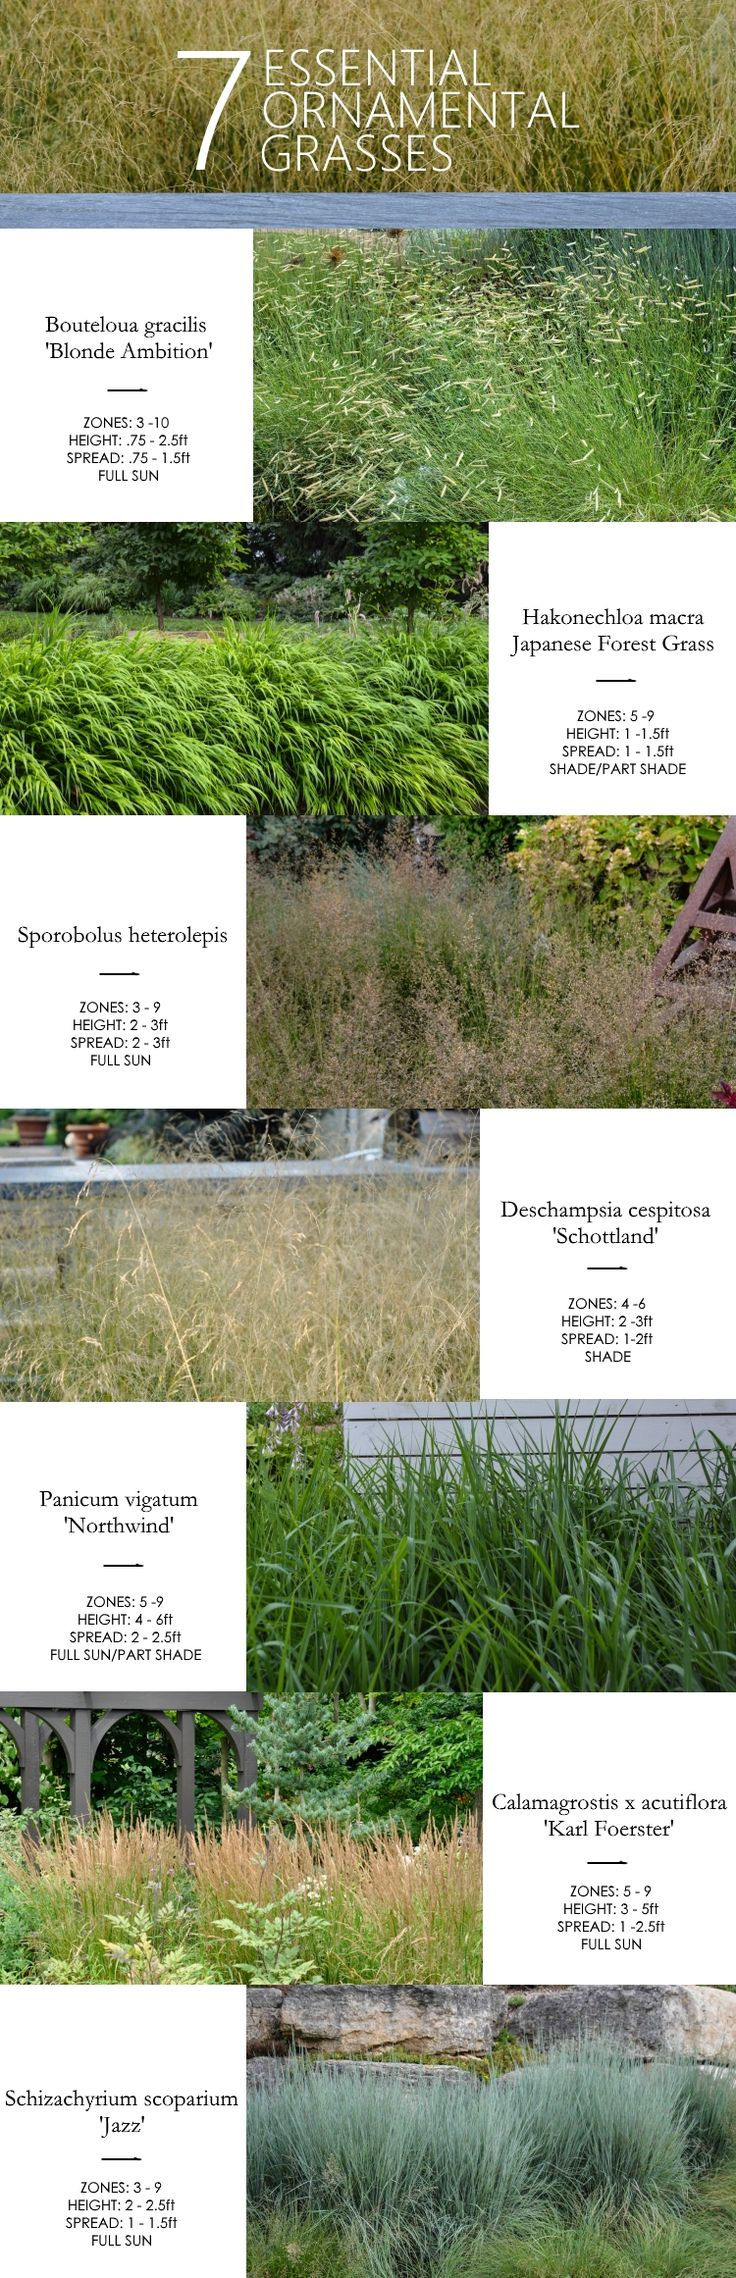 Ornamental grasses zone 5 - 7 Essential Ornamental Grasses Thinking Outside The Boxwood